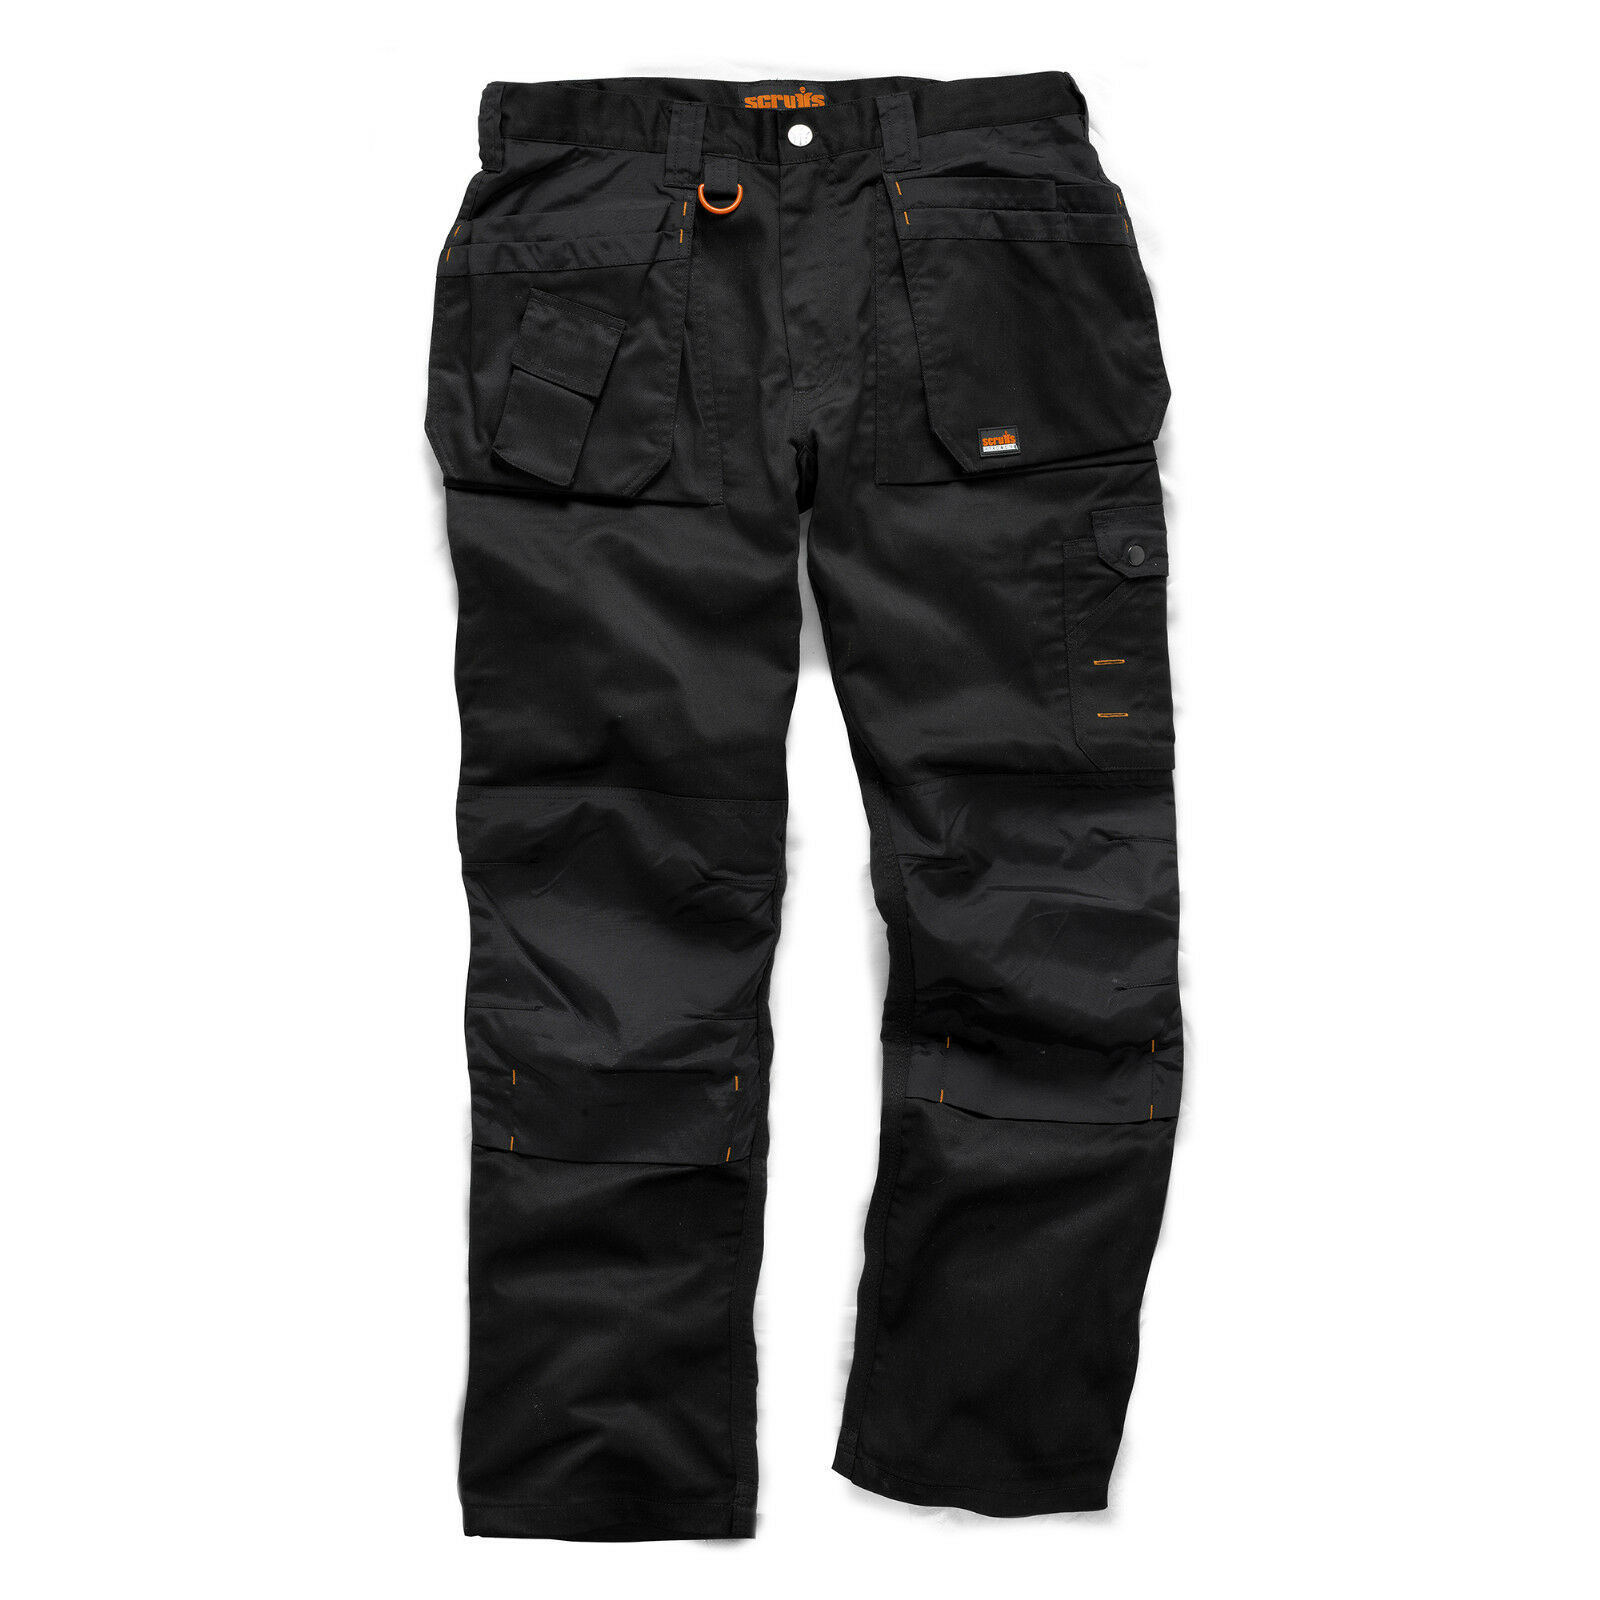 SCRUFFS WORKER PLUS TROUSERS COMBAT CARGO WORK PANTS FAST & FREE DELIVERY